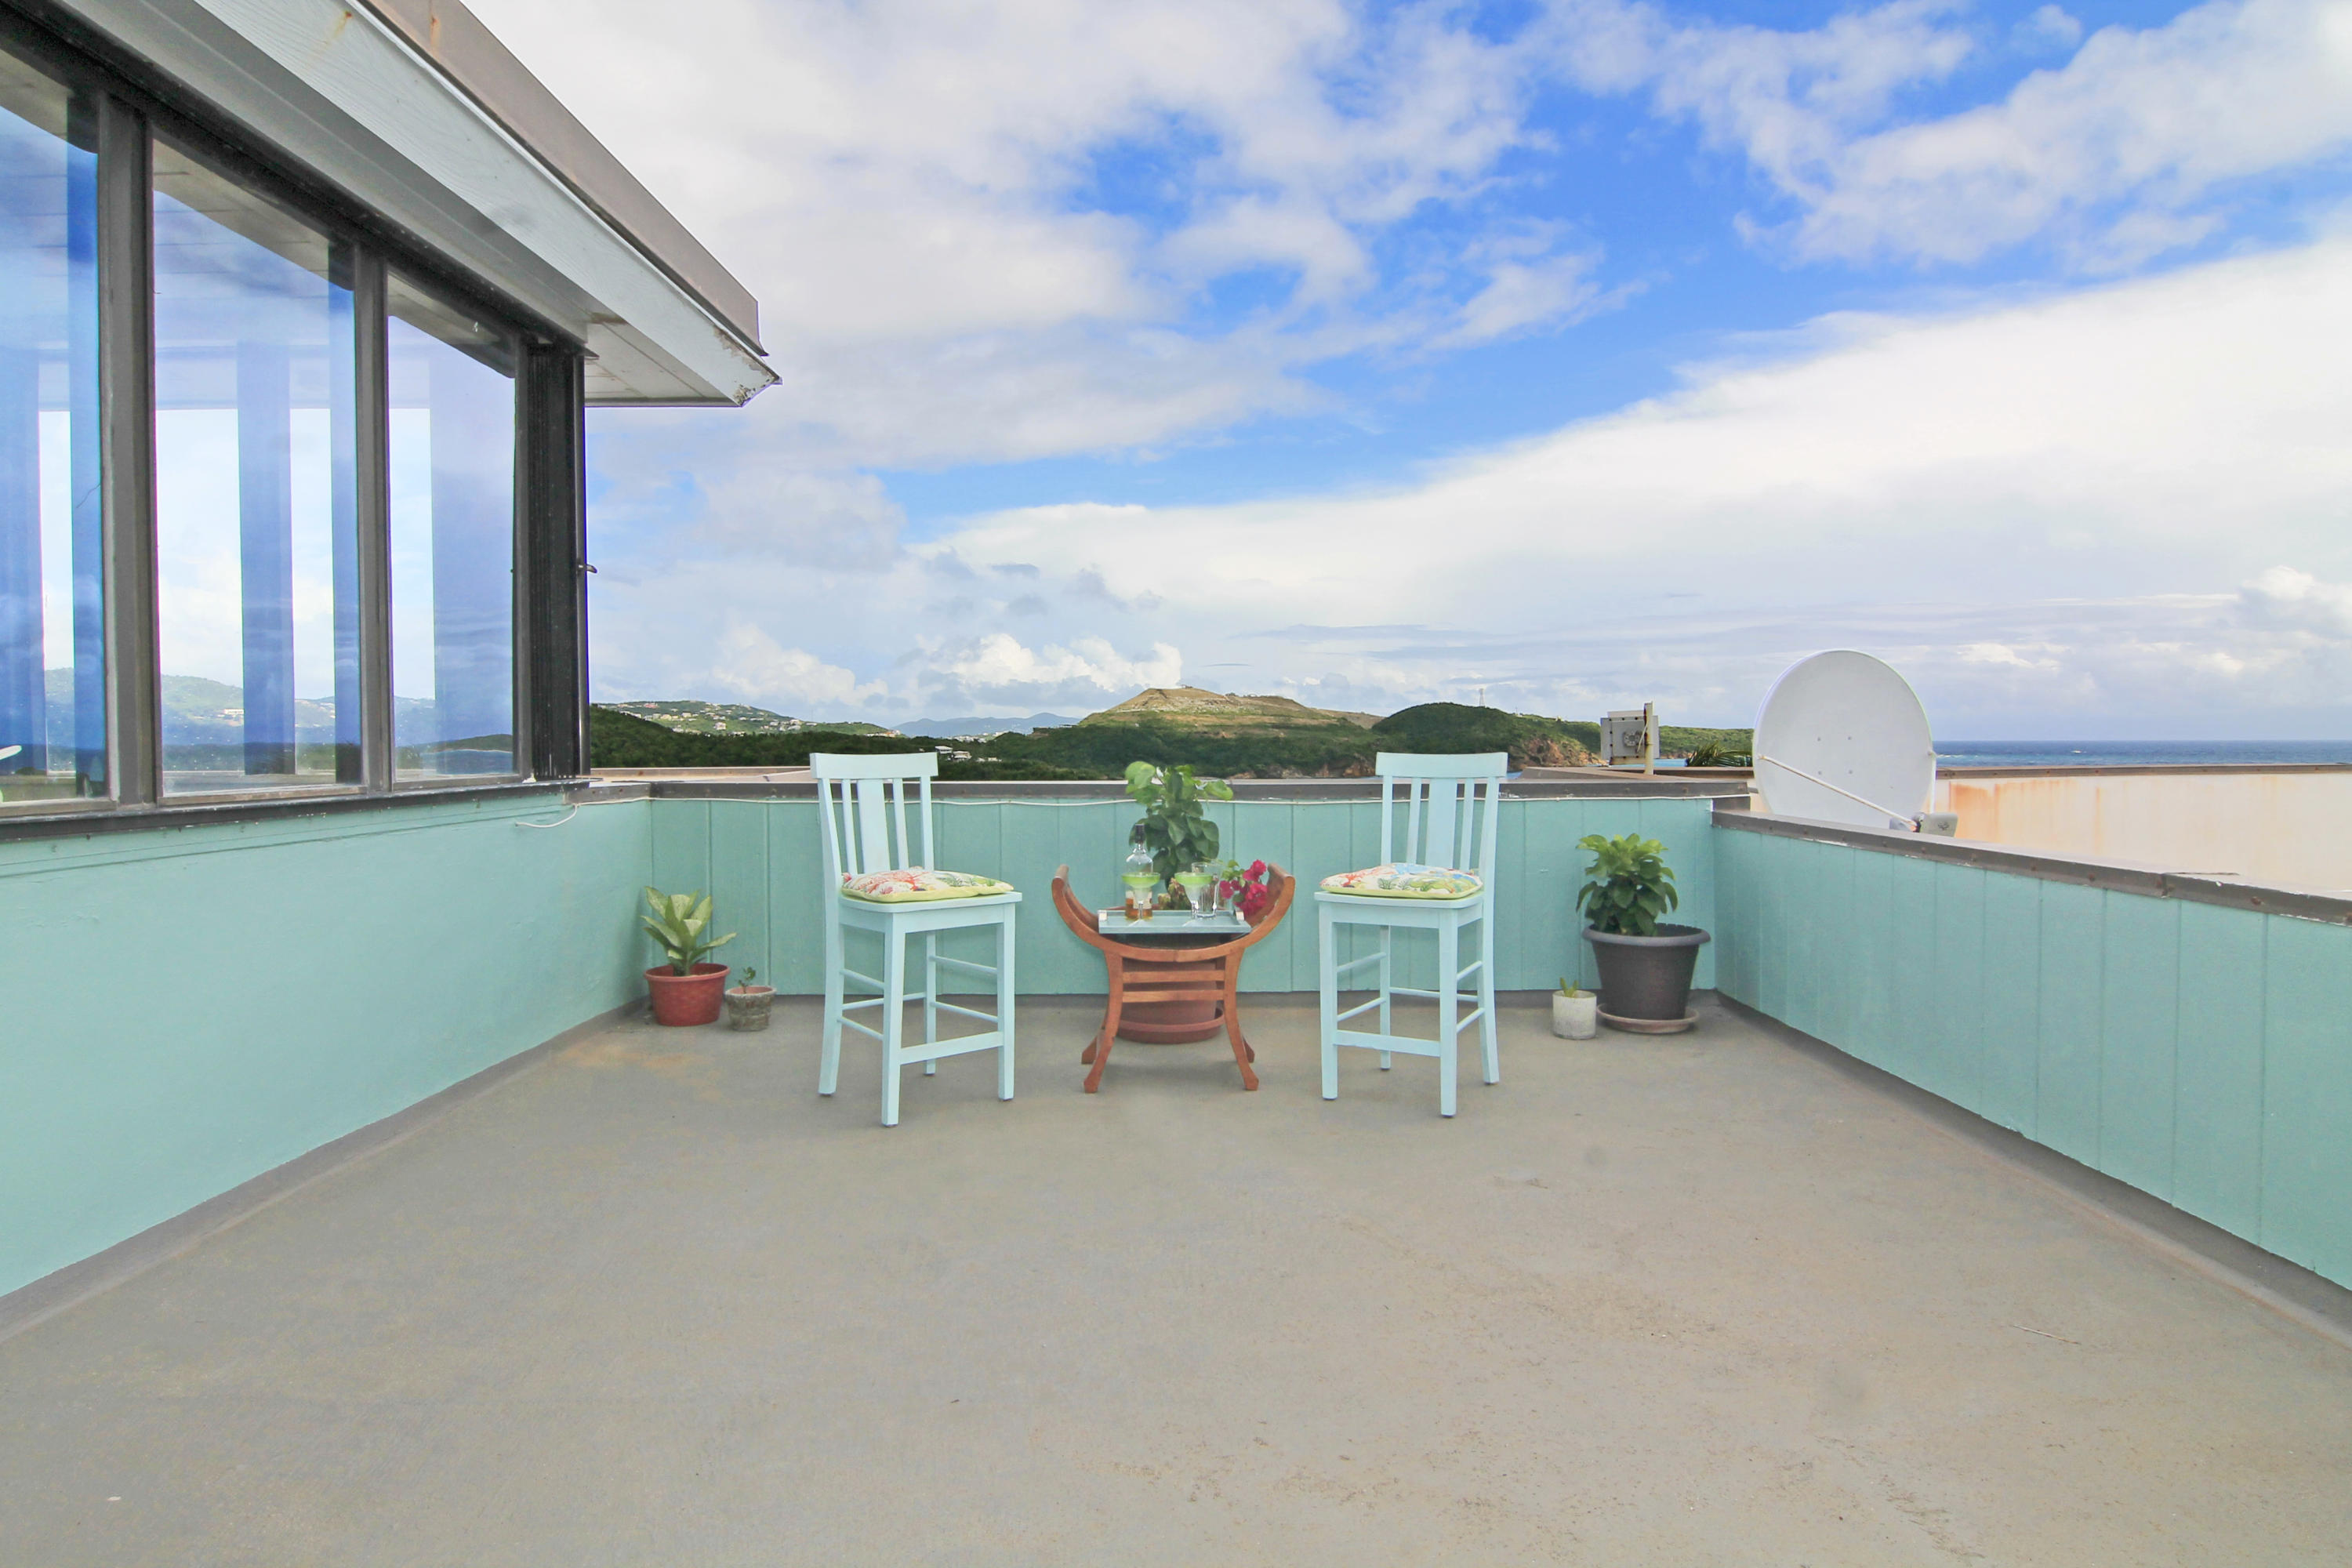 500 sq ft Roof Top Patio